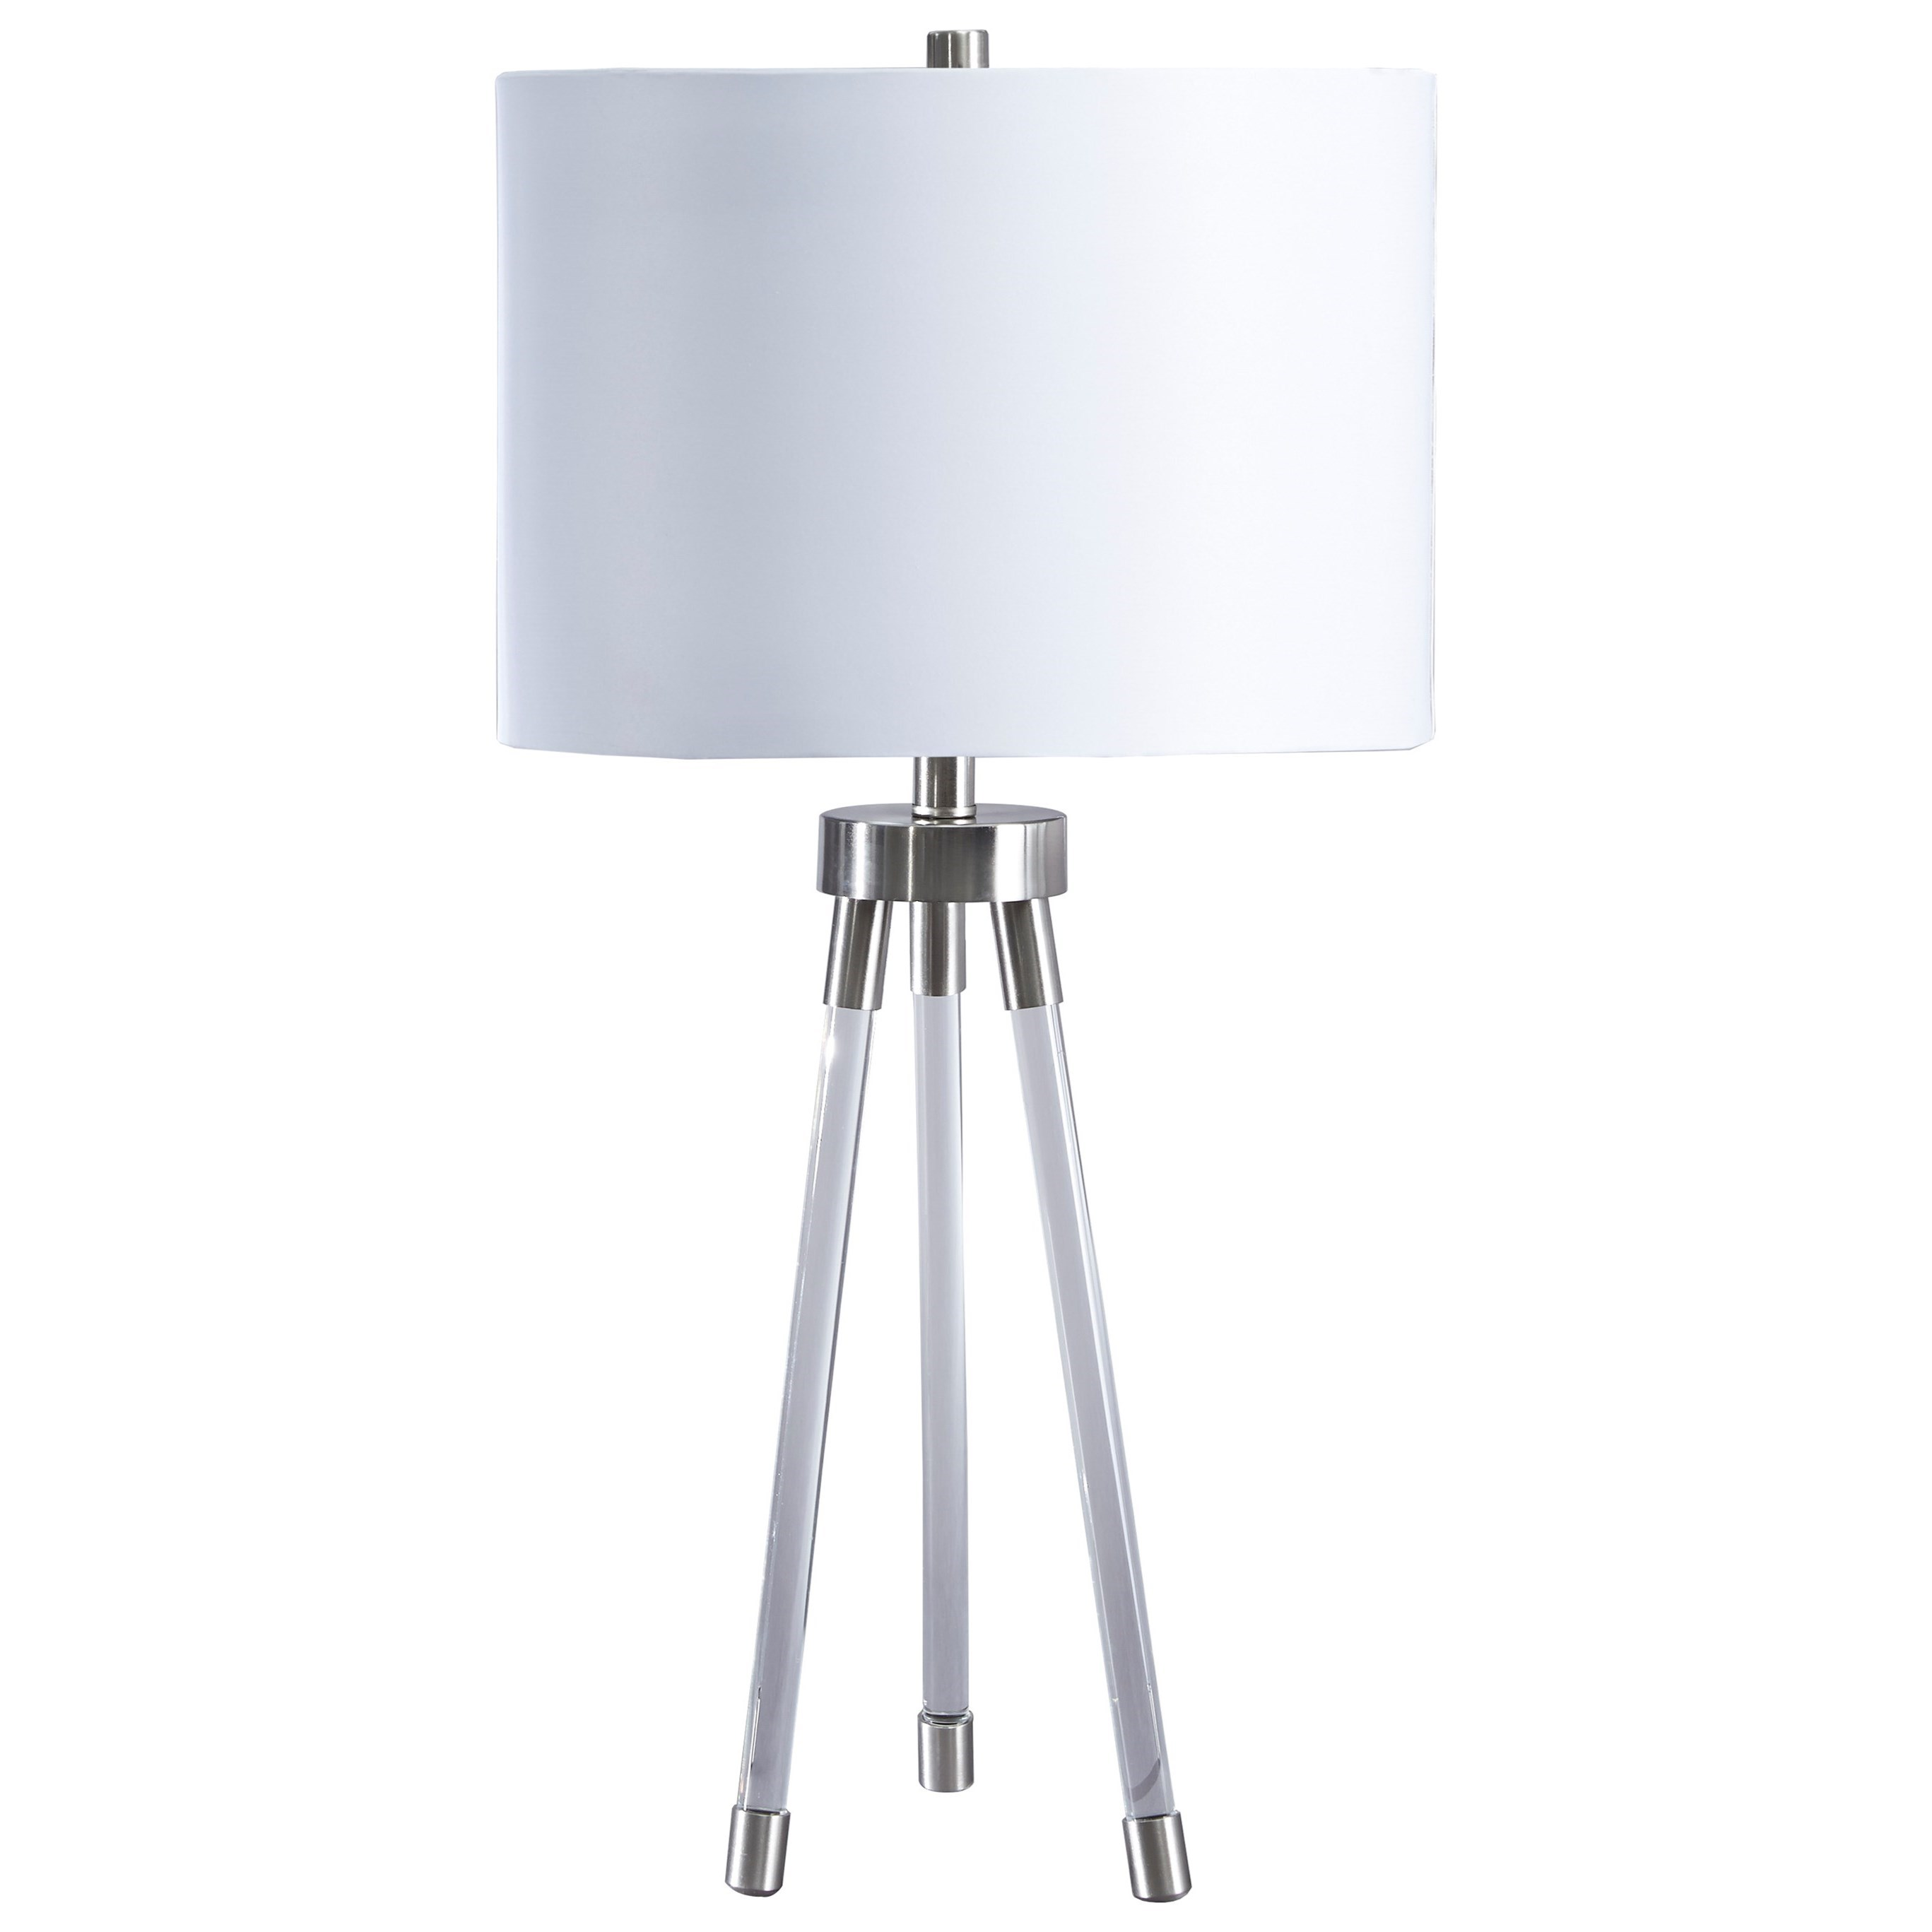 Lamps - Contemporary Idalia Clear/Silver Acrylic Table Lamp by Signature Design by Ashley at Simply Home by Lindy's